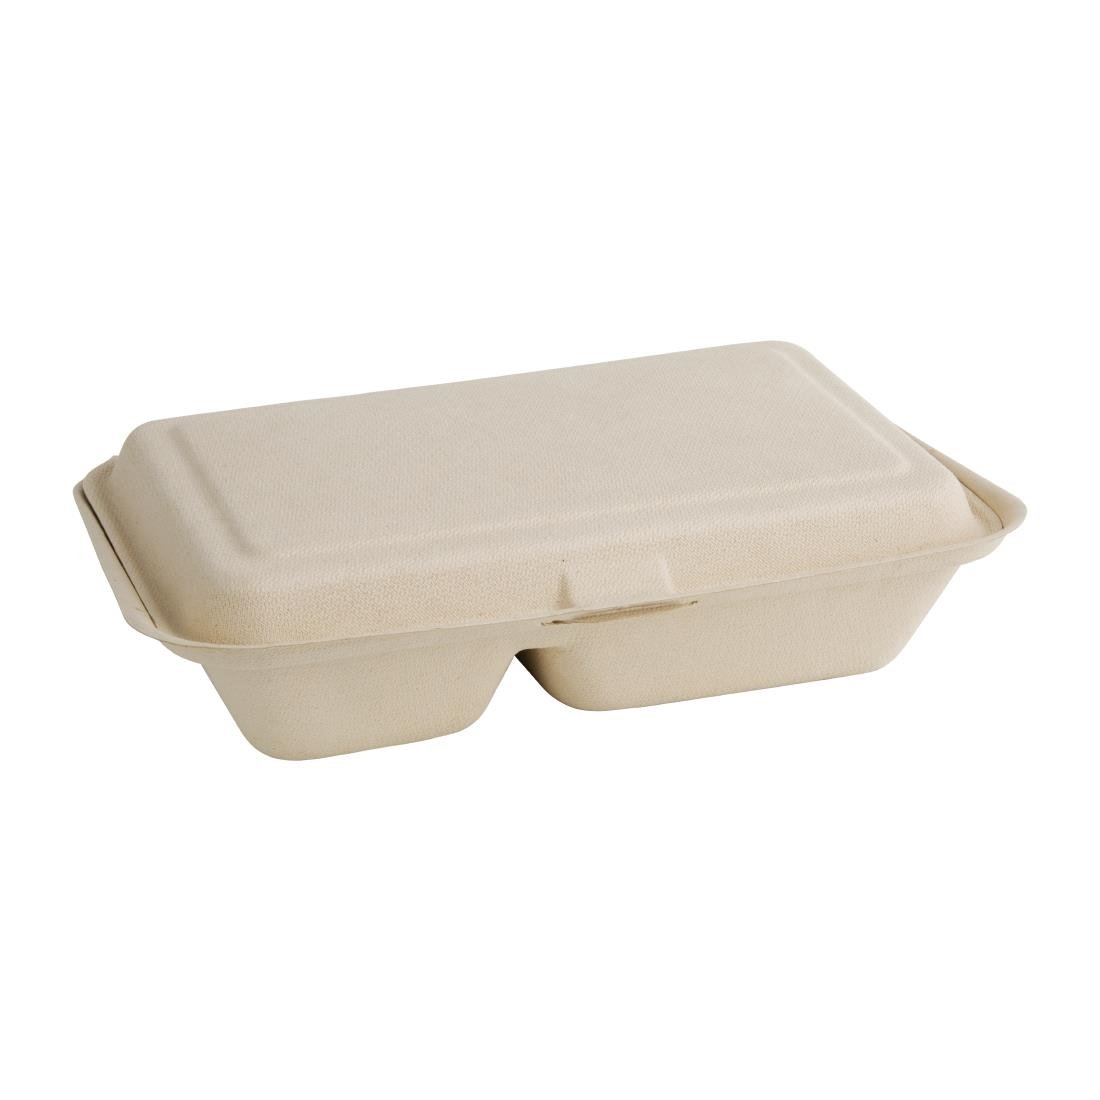 "2-Compartment Hinged Bagasse Container Nat Colour 9x6"" (Pack 250)"